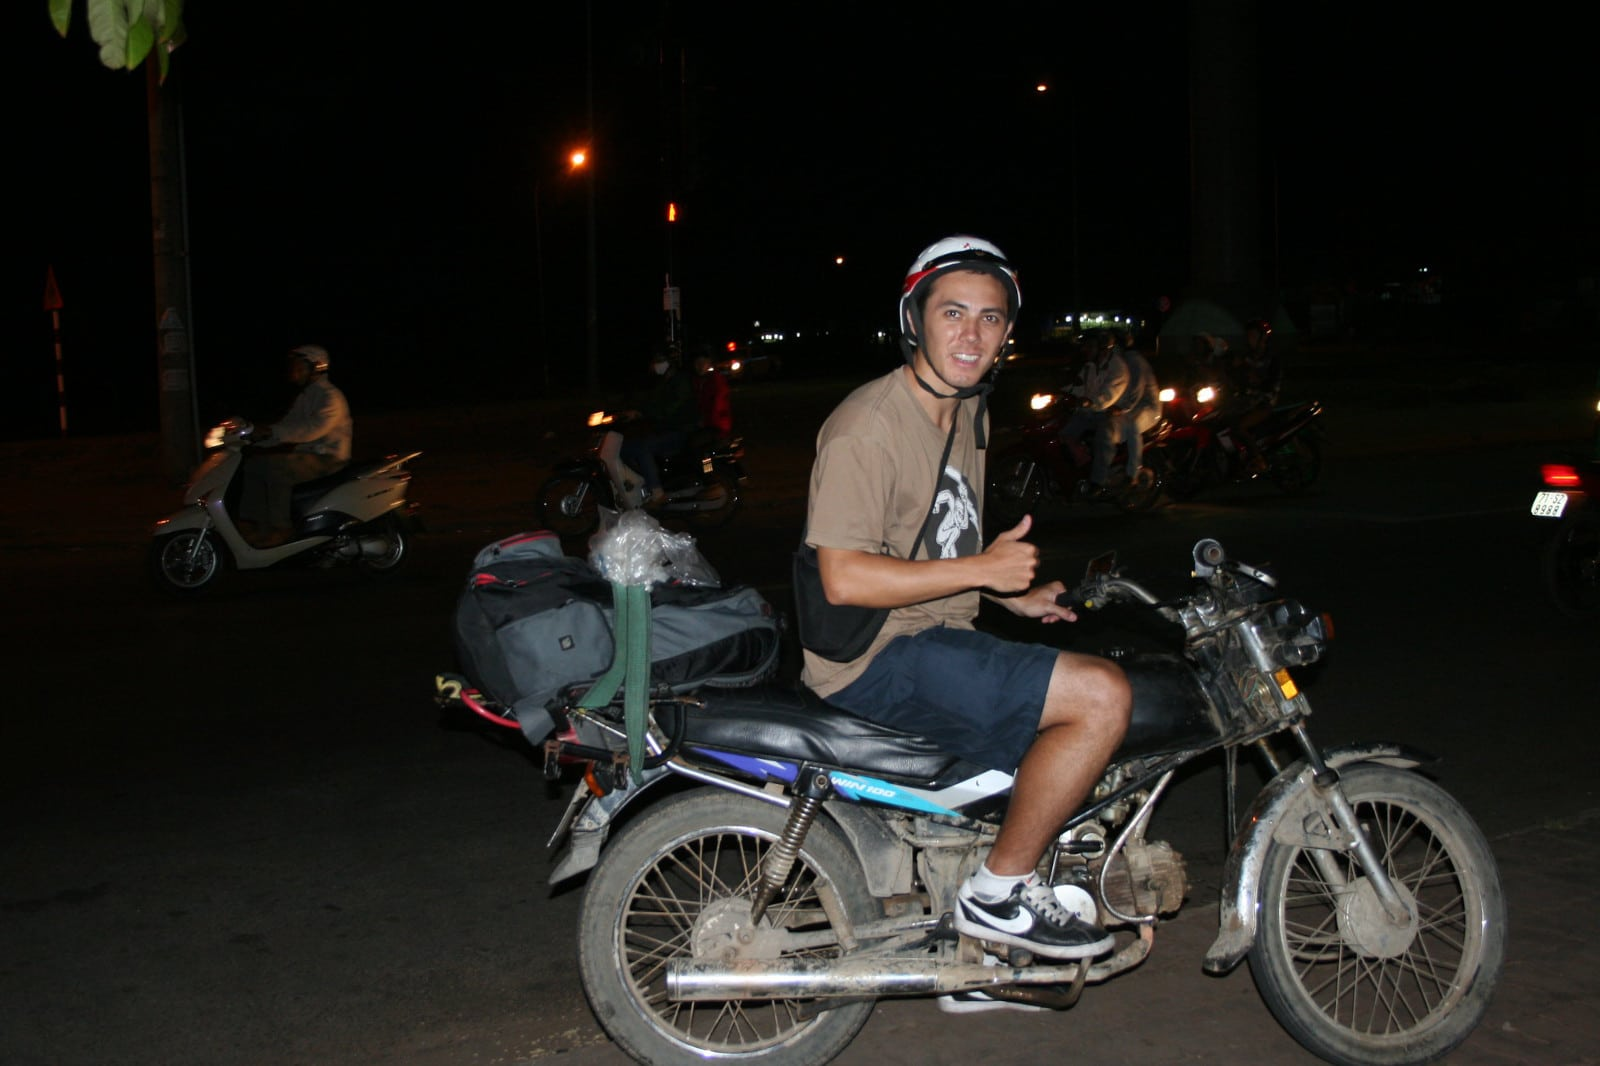 Image of a tourist on a motorbike in Vietnam